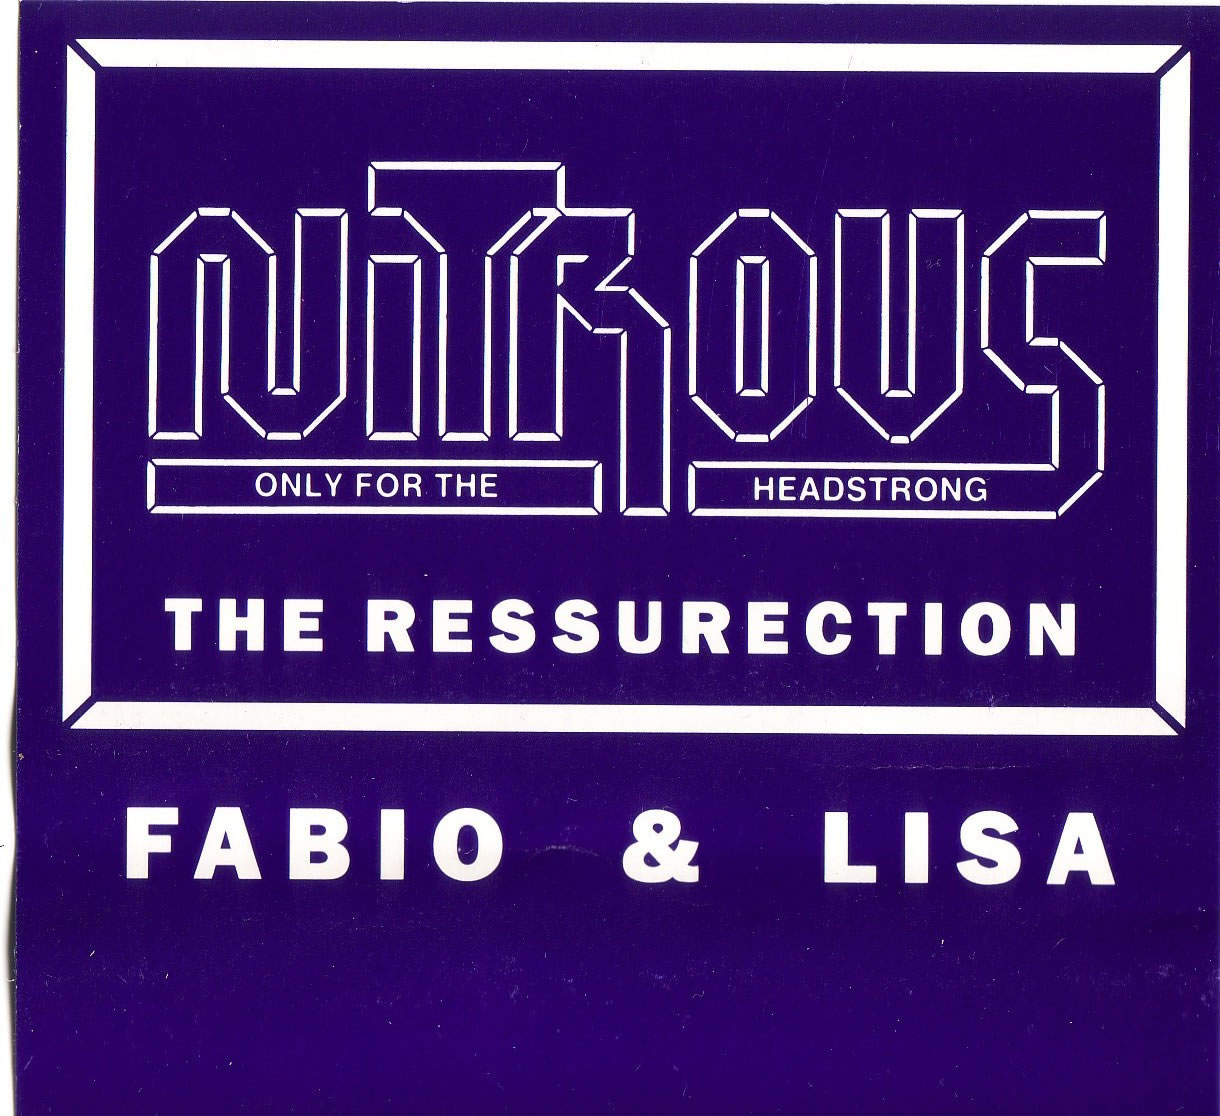 Nitrous 'The Resurection' - Fabio & Lisa_jpg_jpg.jpg